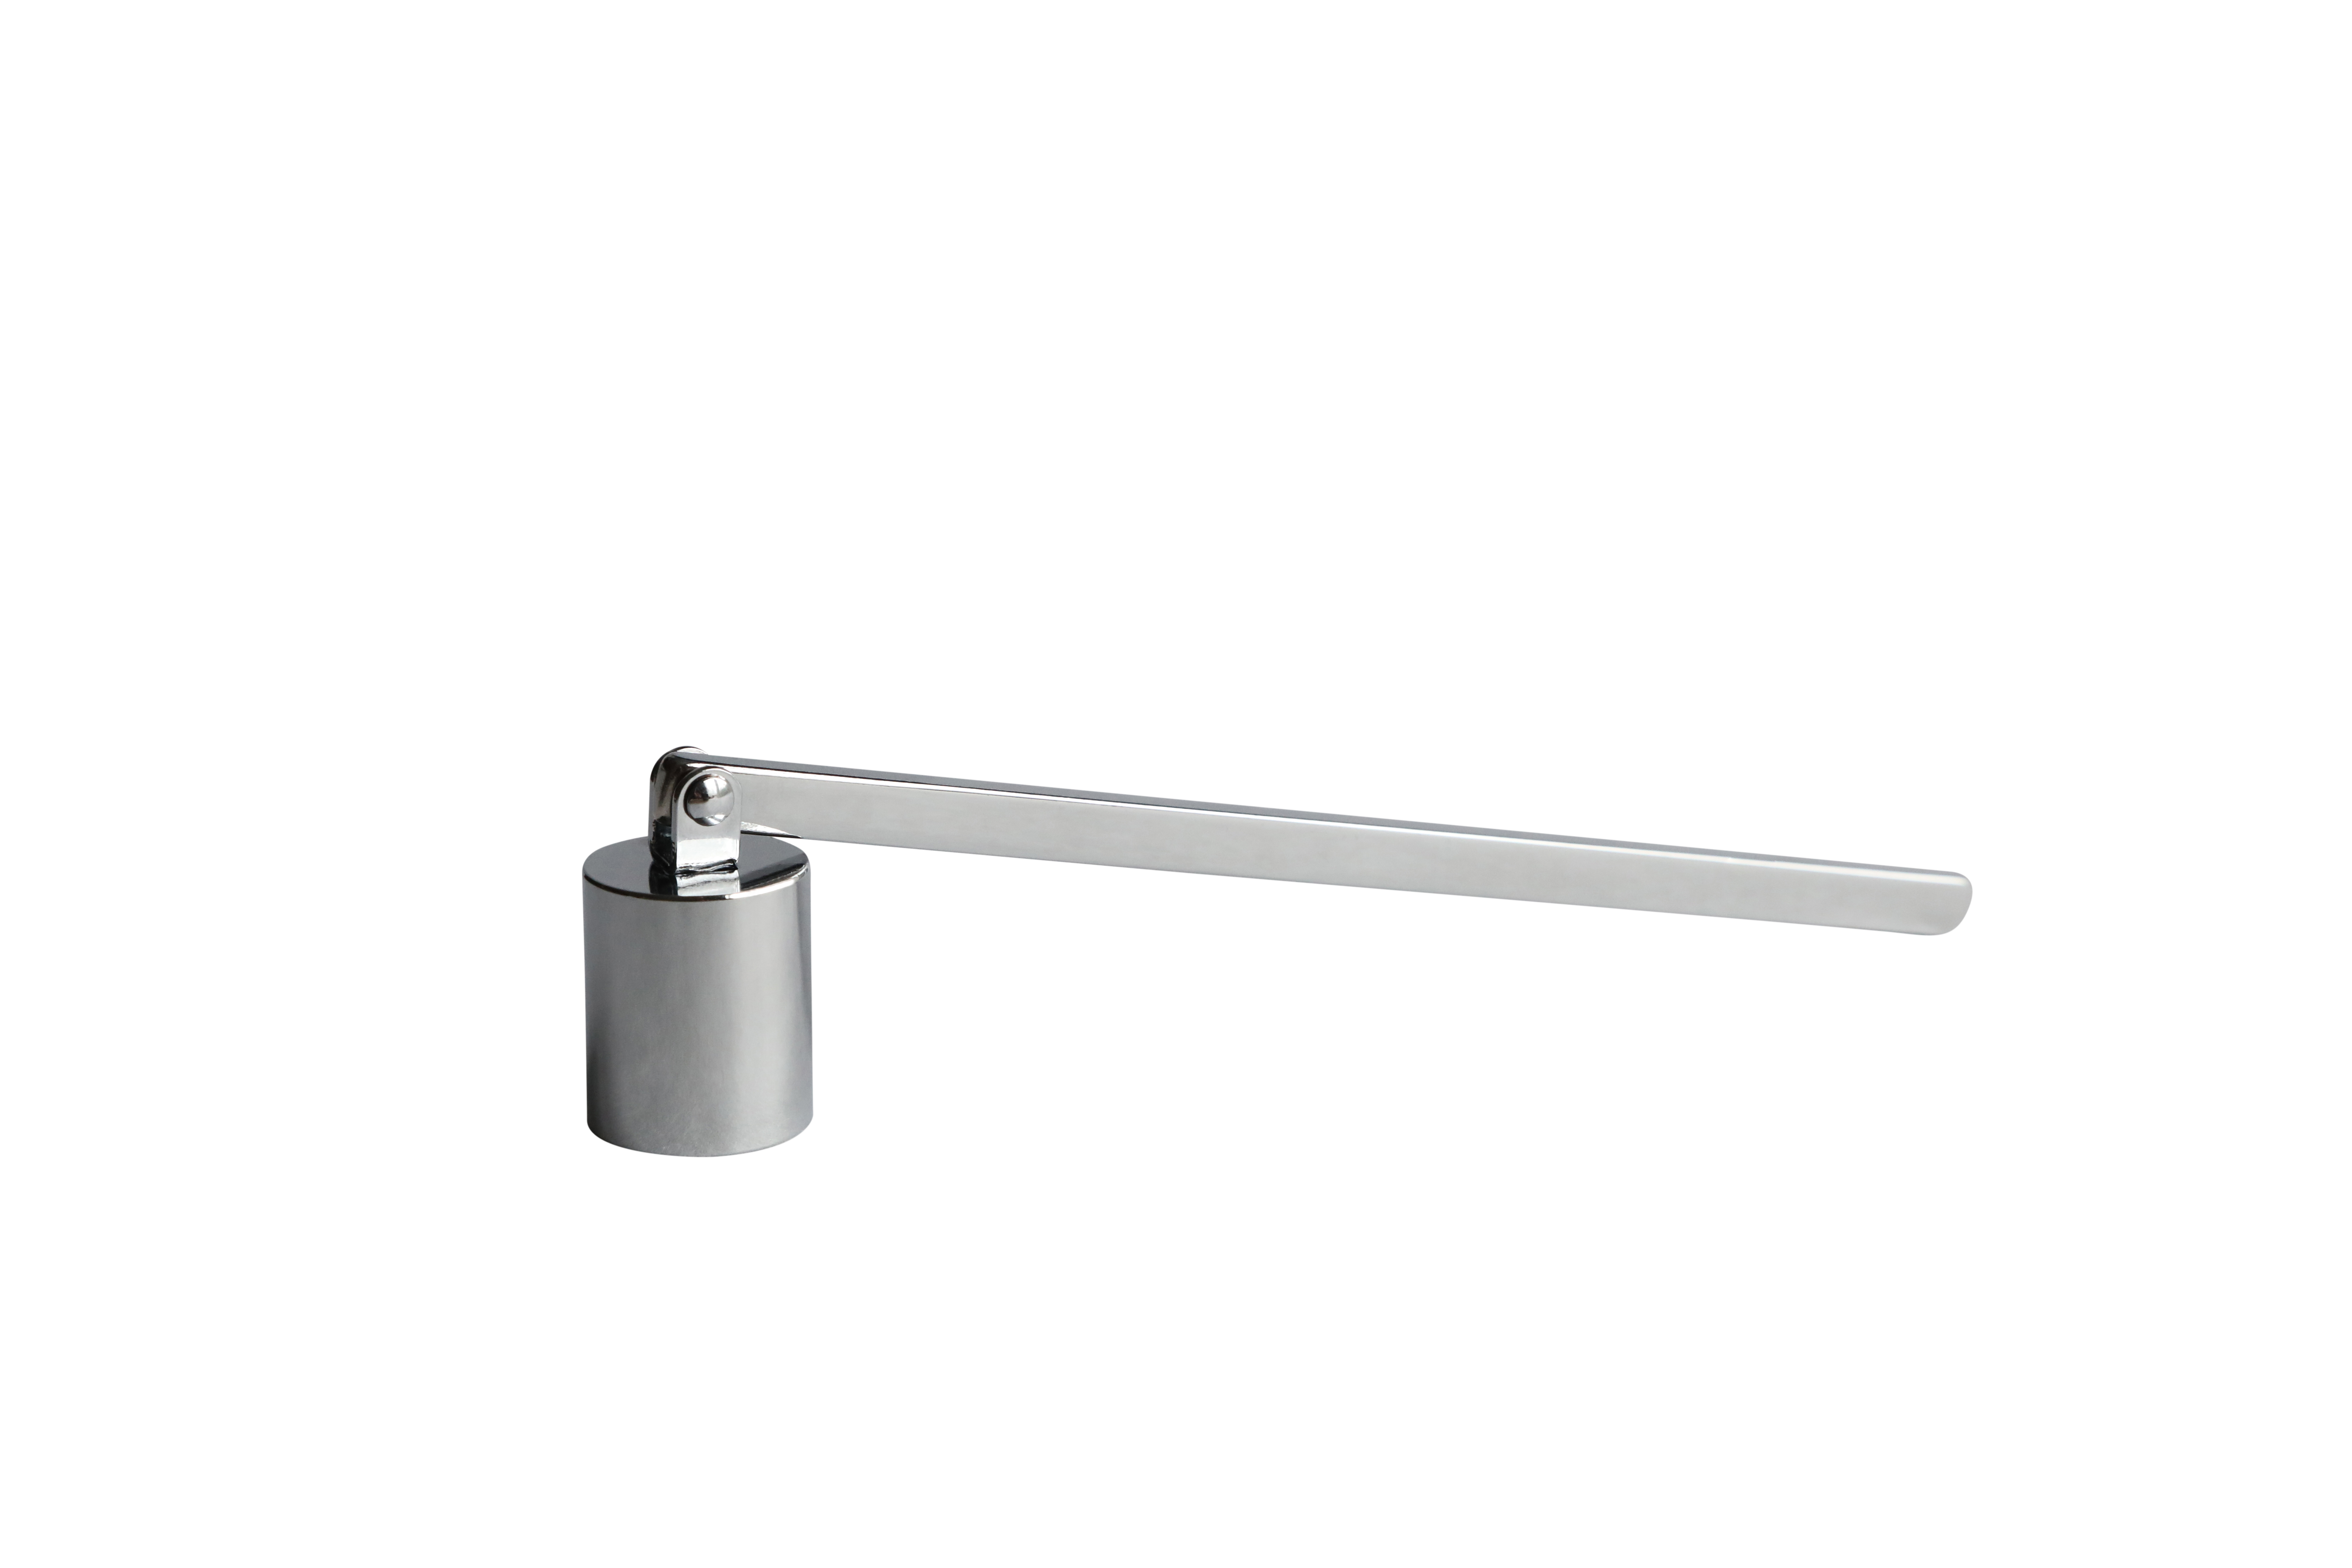 Silver candle snuffer for home accessory and make the wick lasts much longer and a cleaner burn